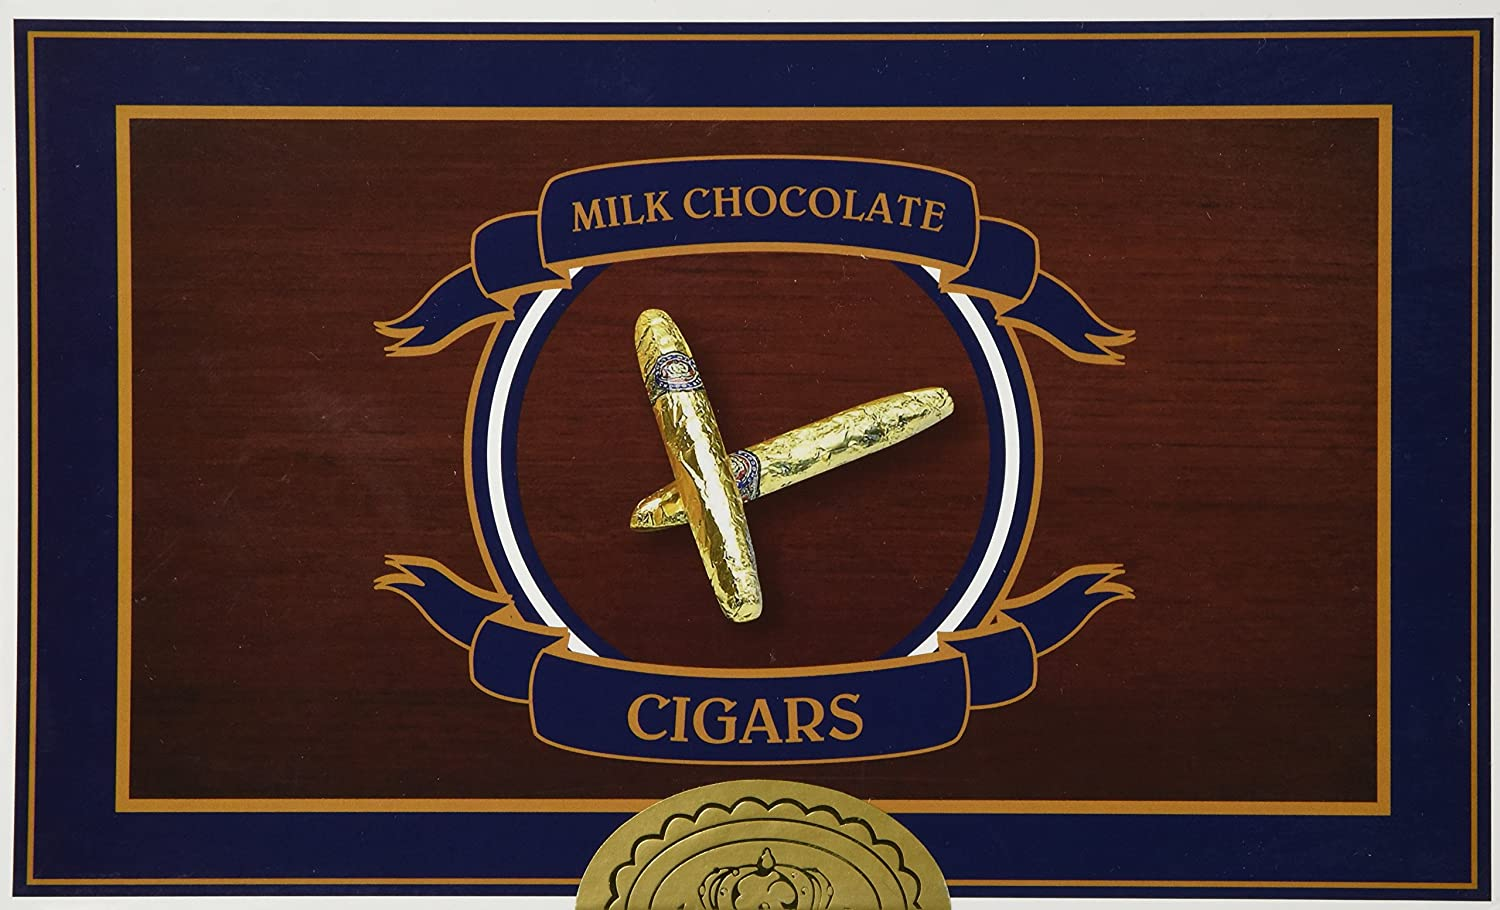 Amazon.com : Chocolate Cigars - Gold, 24 count : Chocolate Candy ...